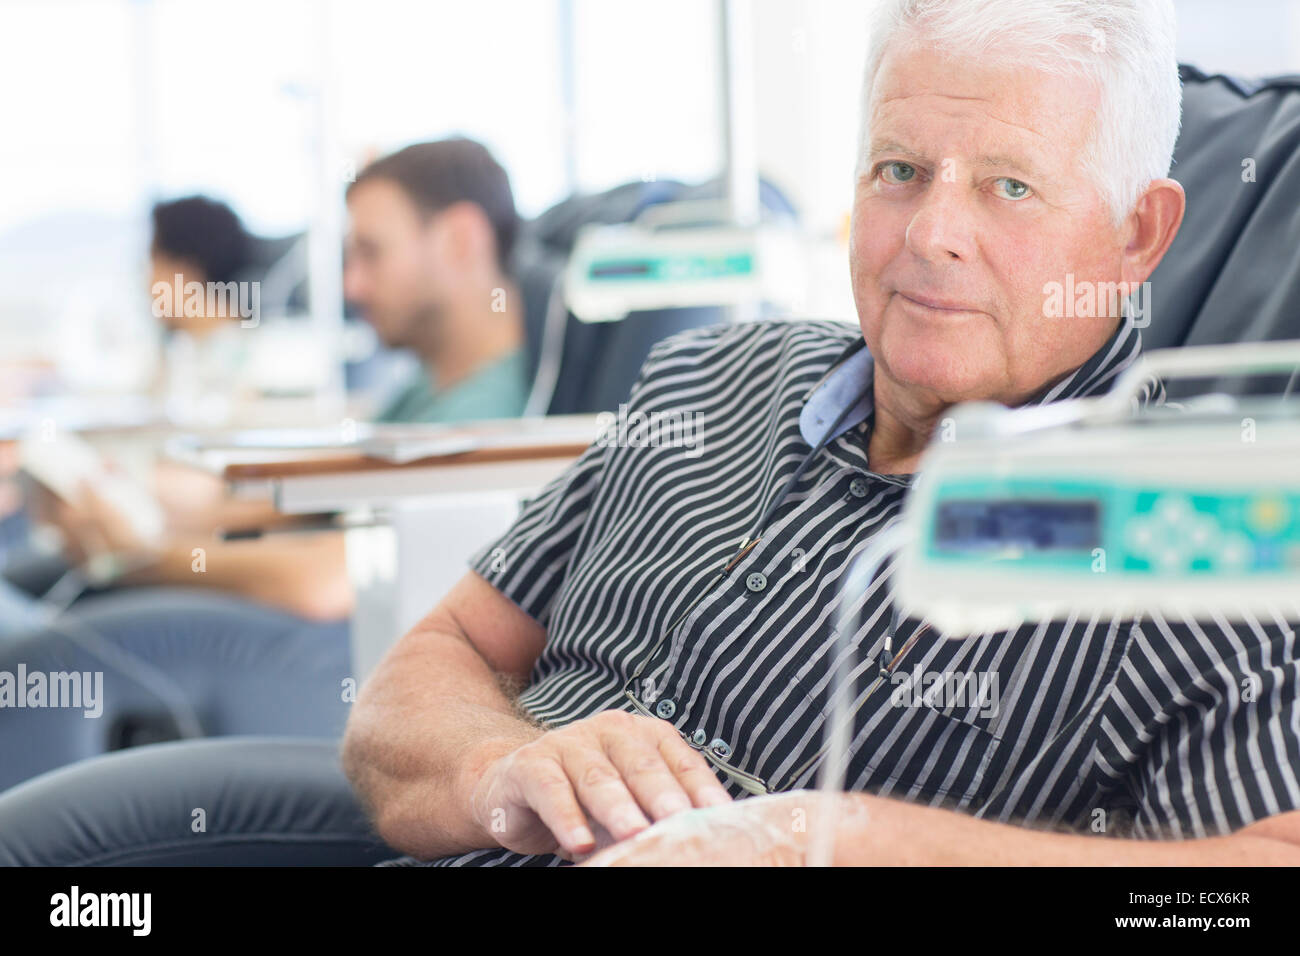 Portrait of patient undergoing medical treatment in outpatient clinic - Stock Image